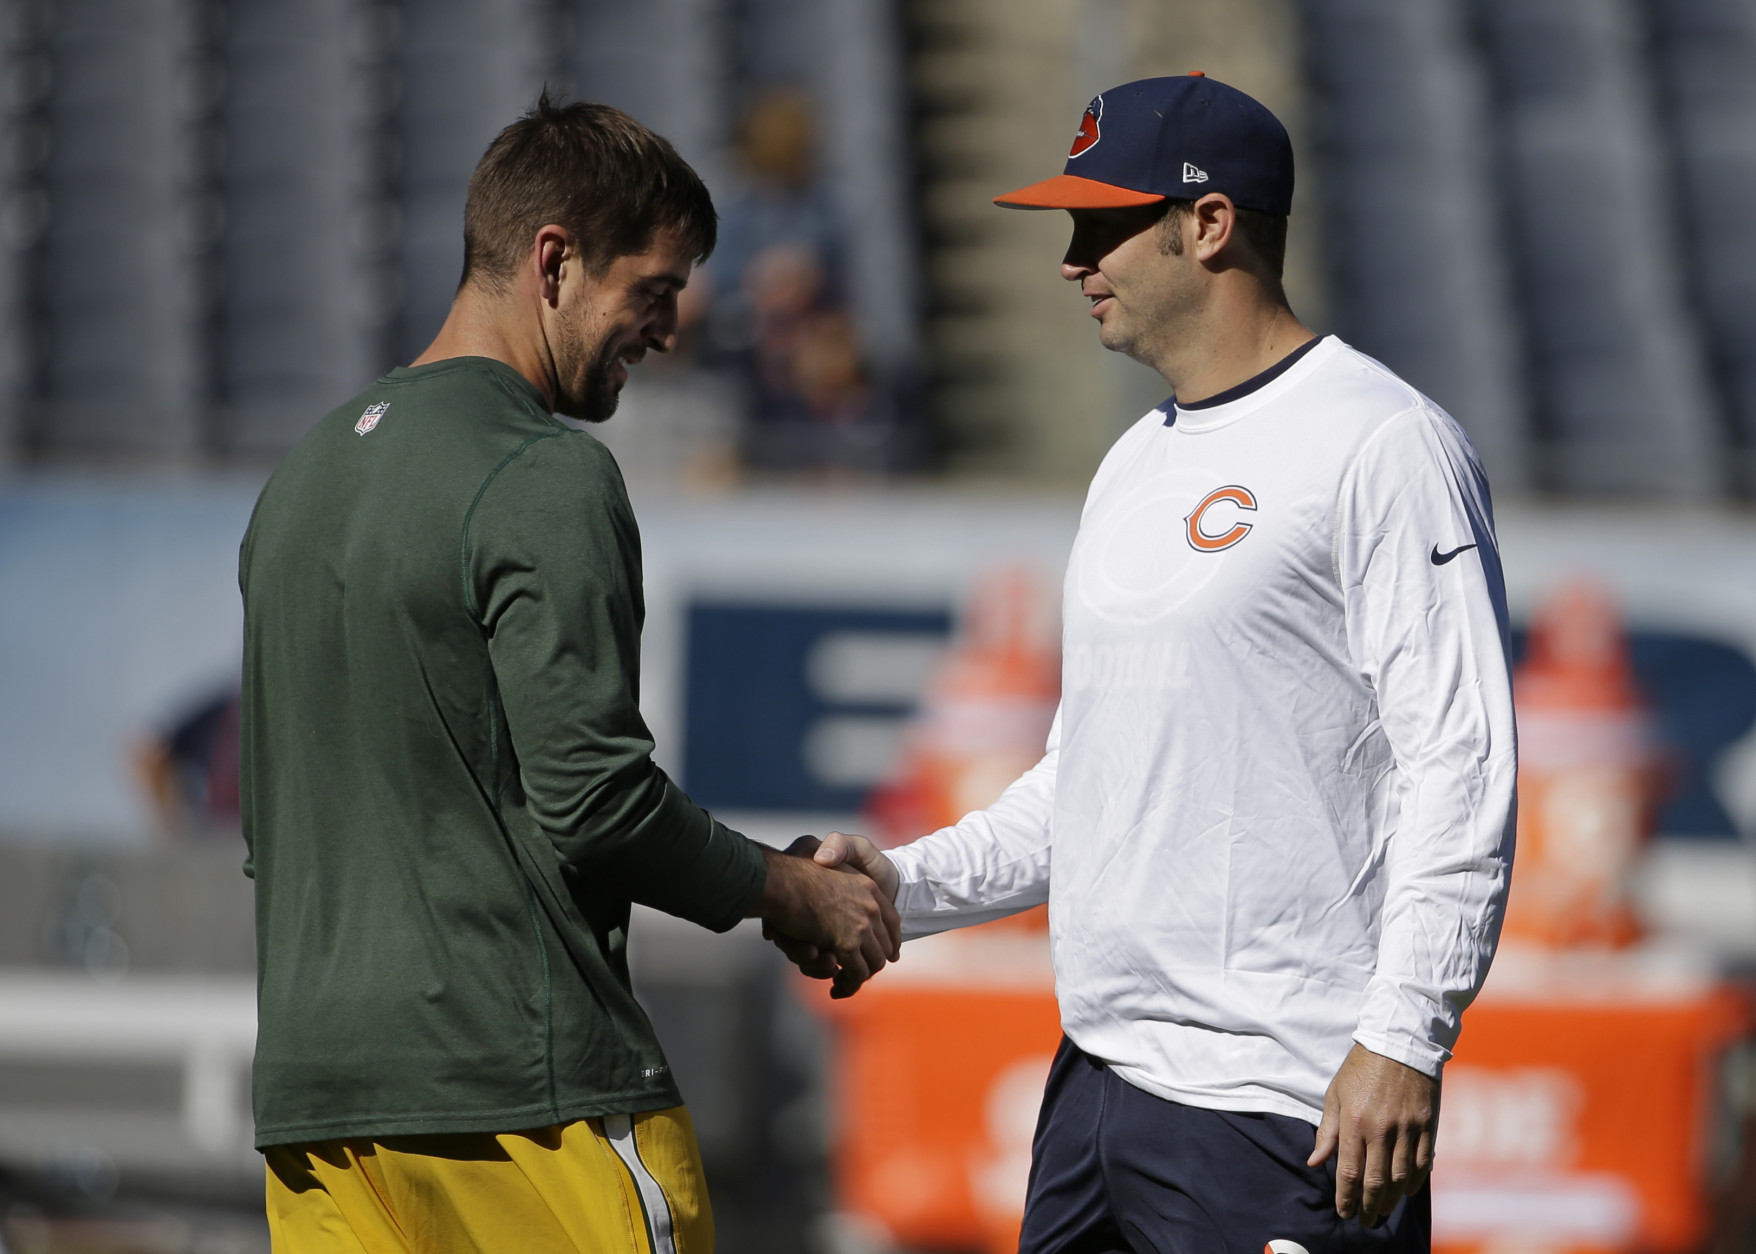 Green Bay Packers quarterback Aaron Rodgers, left, and Chicago Bears quarterback Jay Cutler greet each other before their NFL football game, Sunday, Sept. 13, 2015, in Chicago. (AP Photo/Nam Y. Huh)